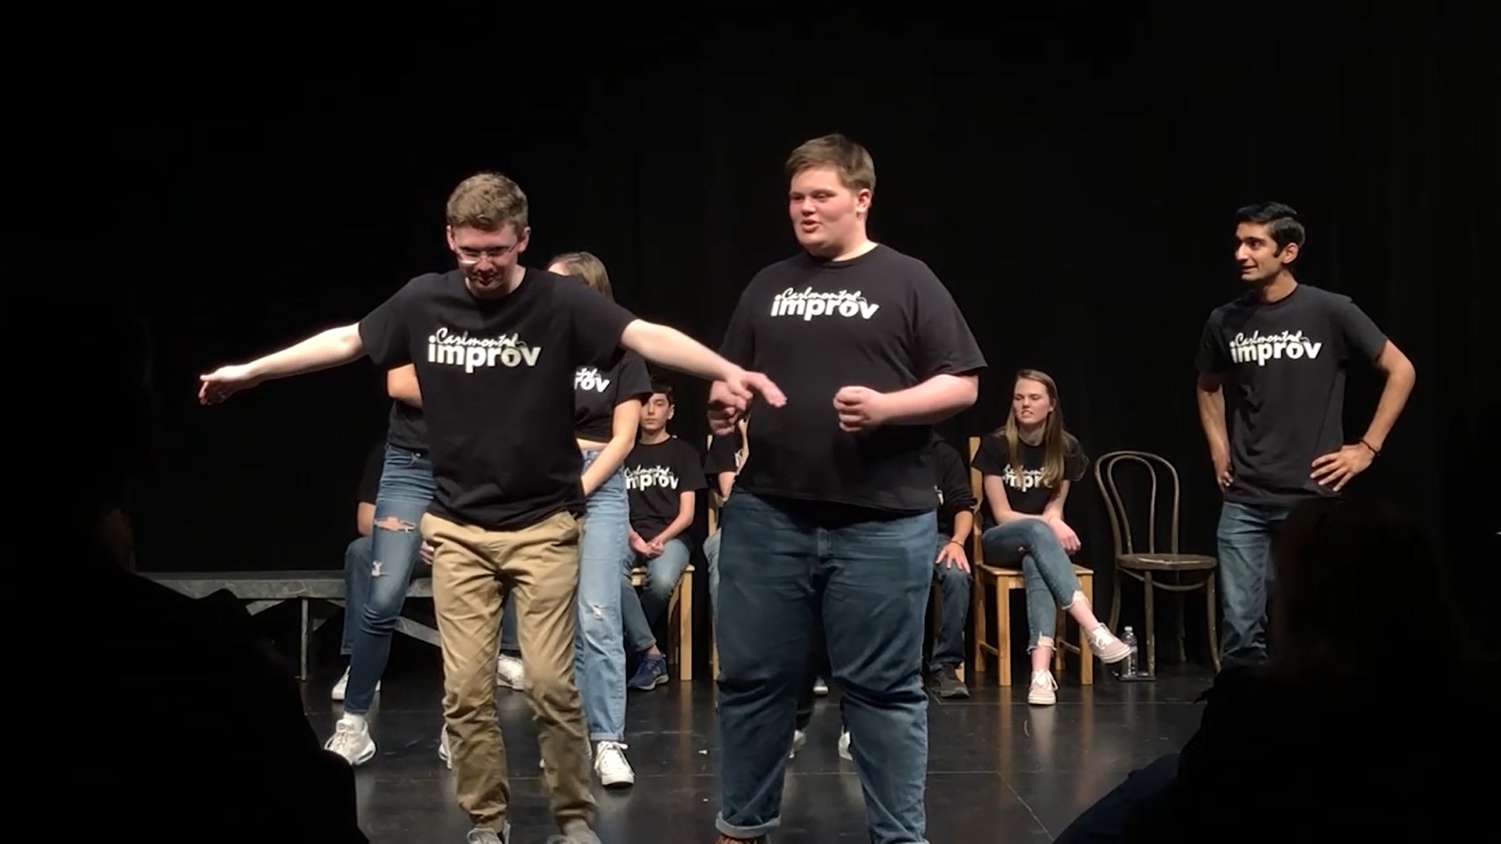 Carlmont's improv team performs in the blackbox theater.